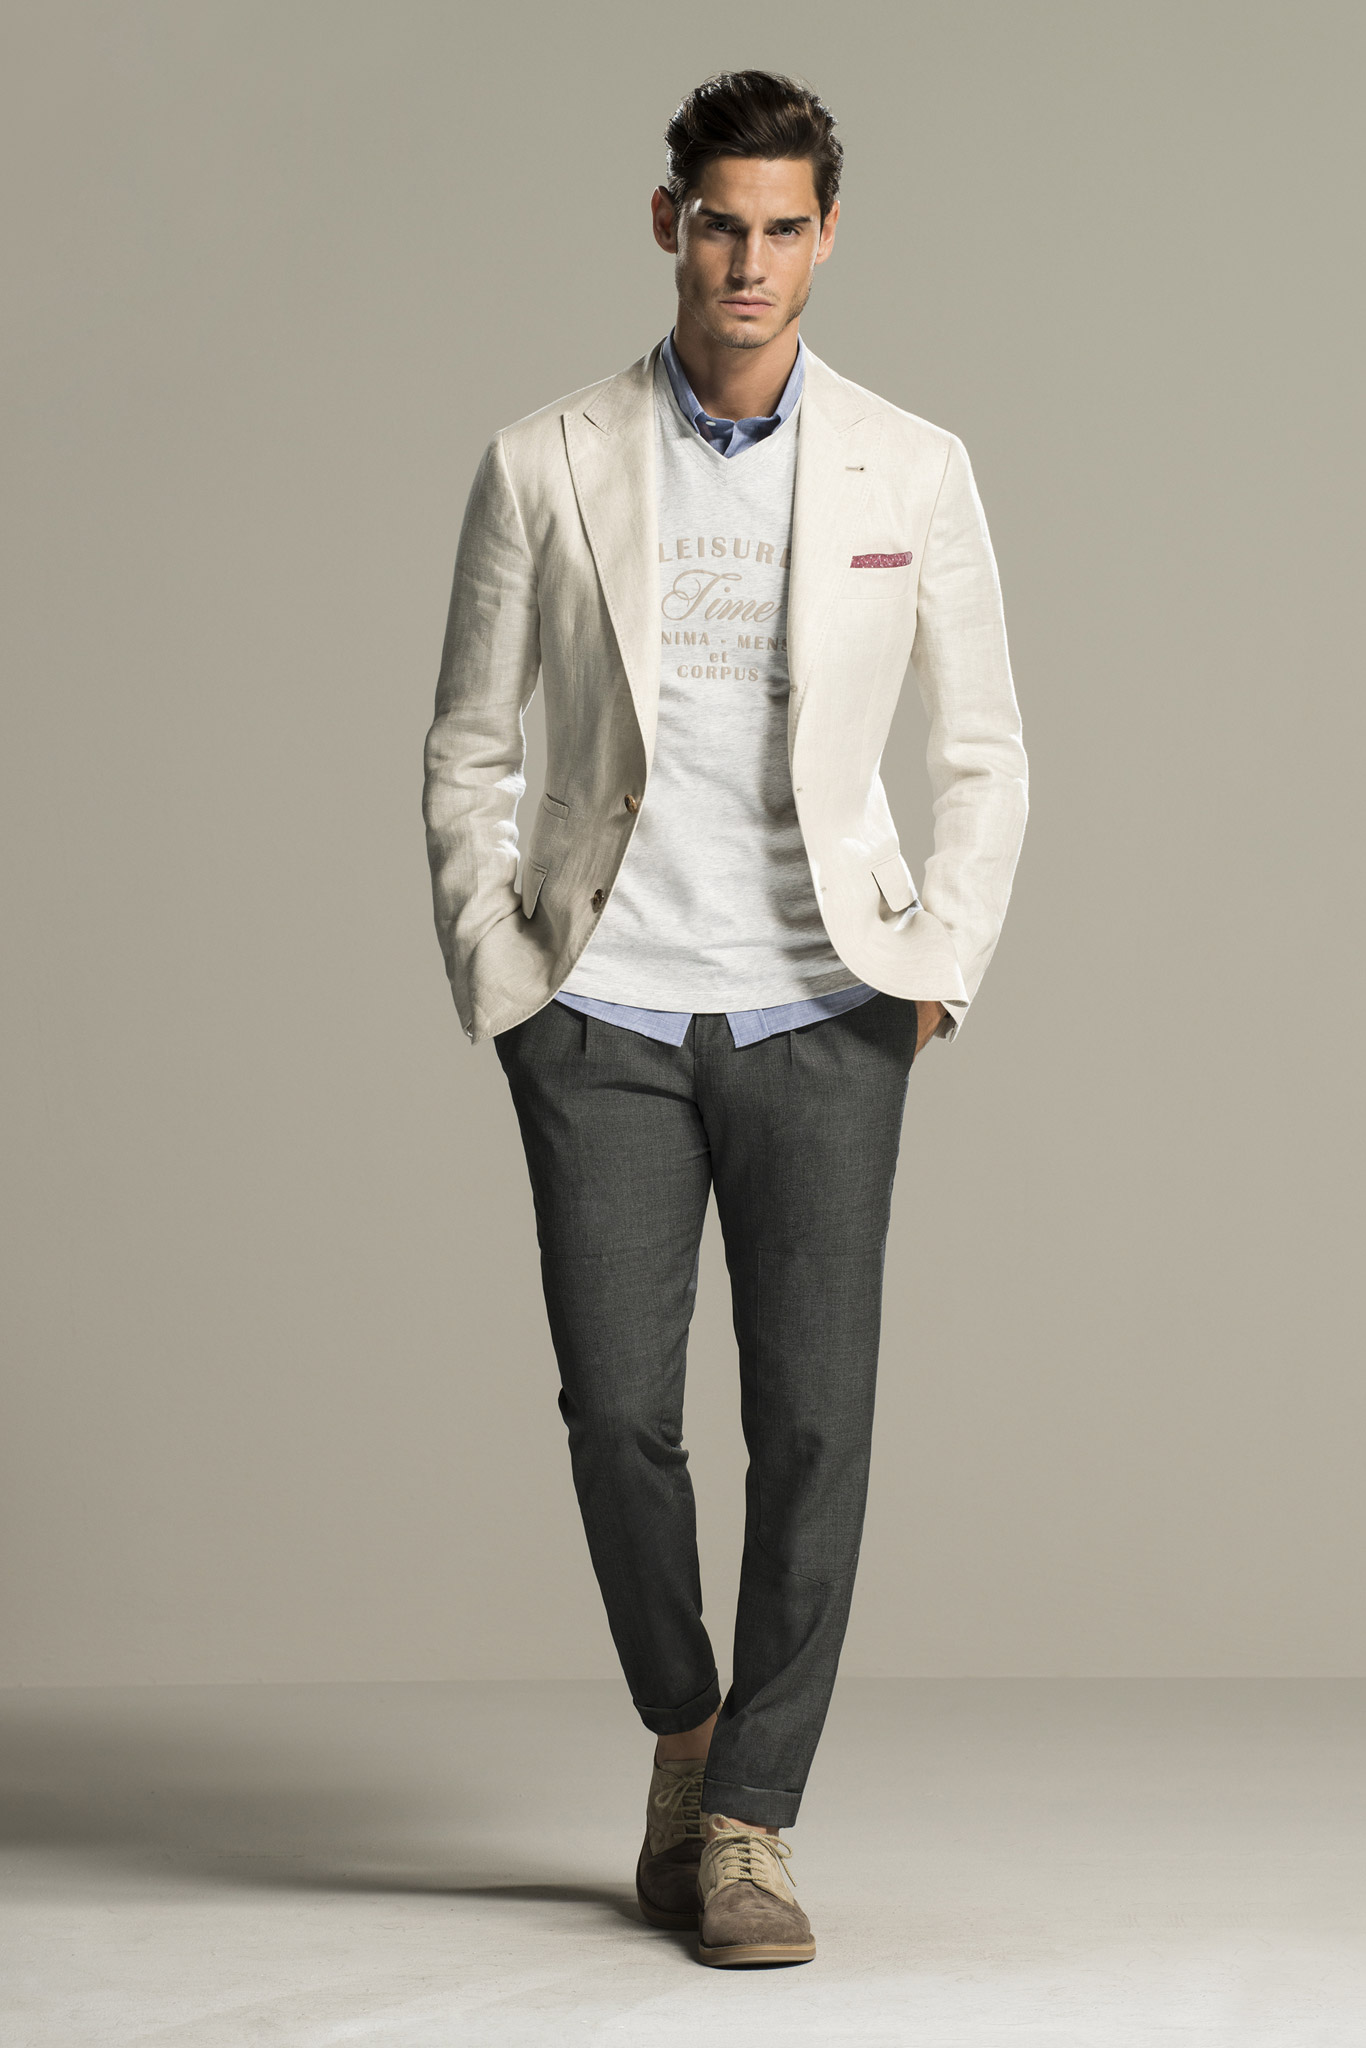 Brunello Cucinelli Spring 2016 Menswear The Gentlemen 39 S